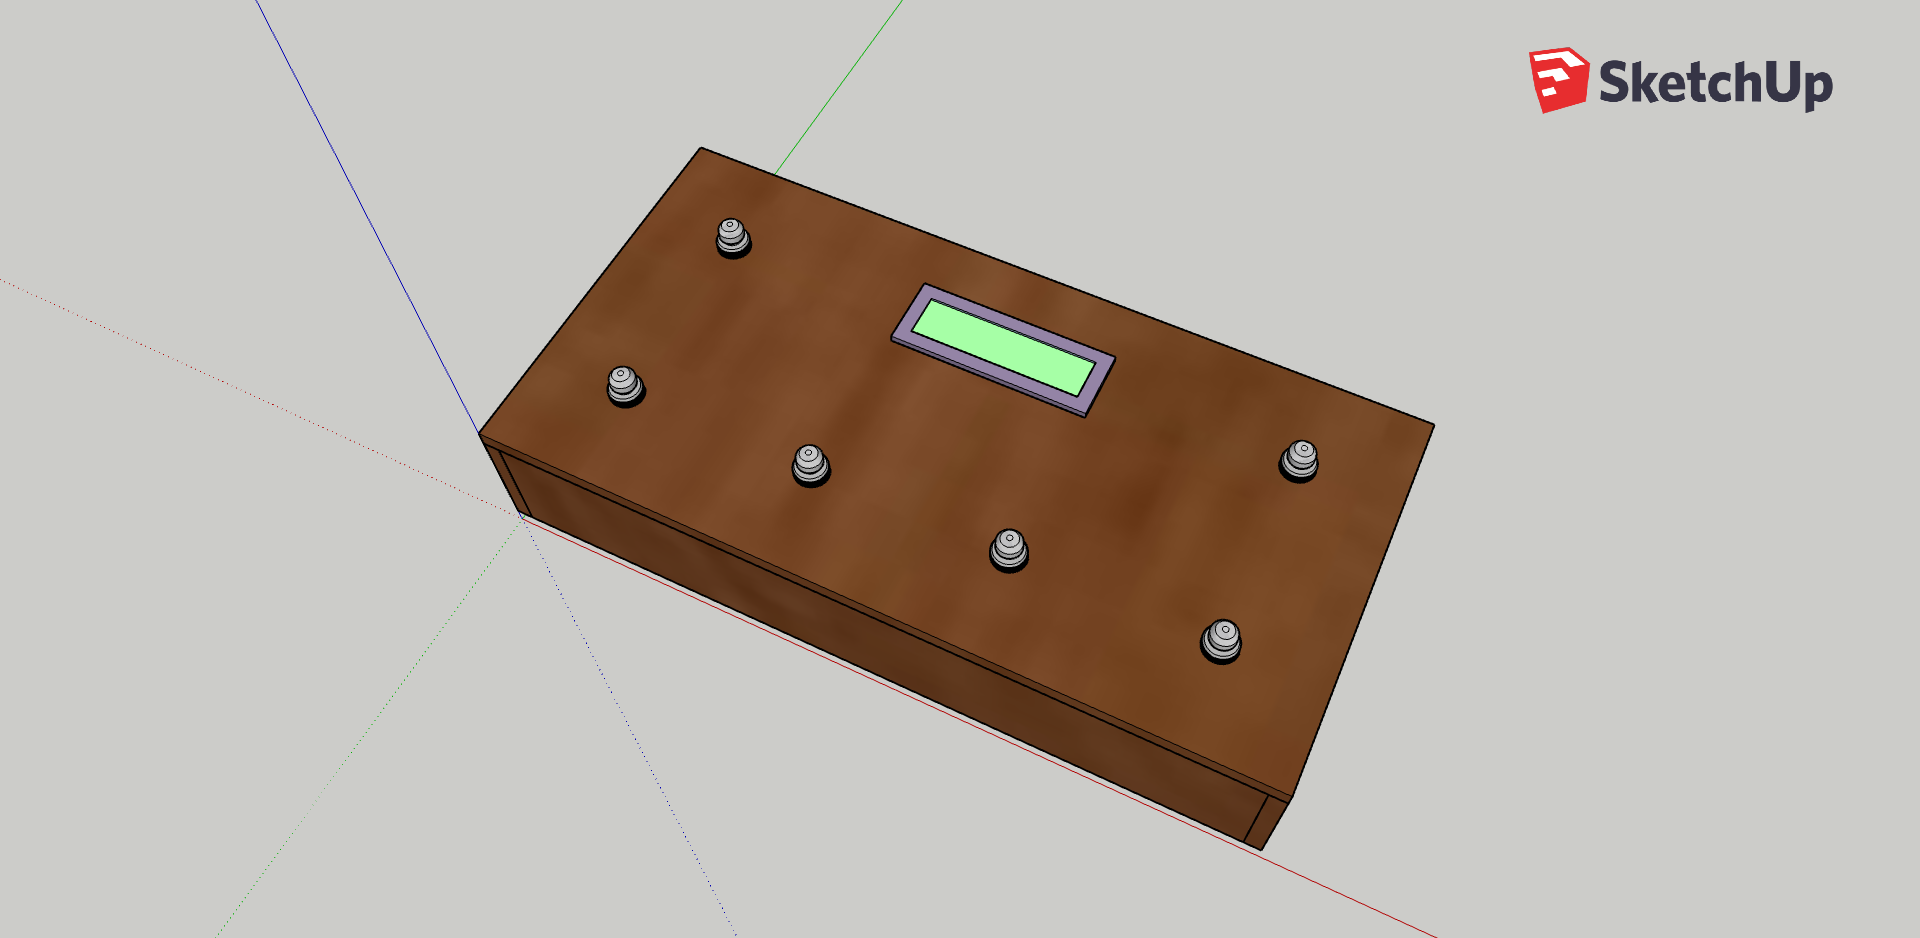 A screenshot of a 3D model of SoundFloored with the lid on. The box is rectangular and has six footswitches, distributed with two on the upper long edge (with a screen between) and four on the lower long edge